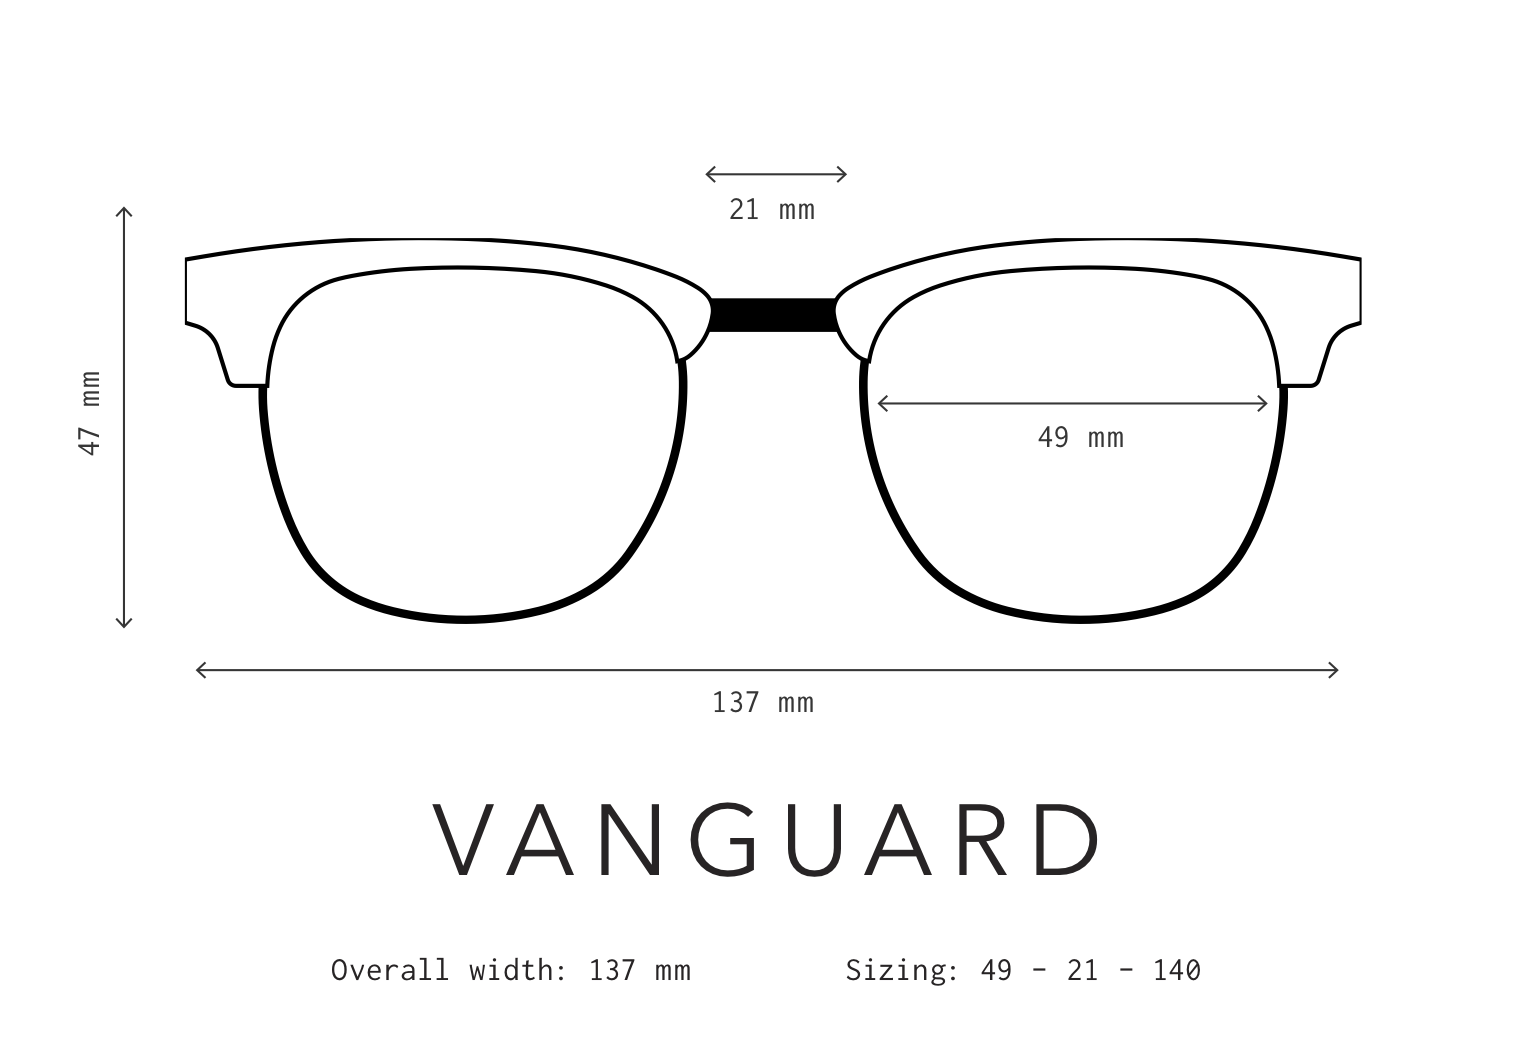 Vanguard Sunglasses Fit Information